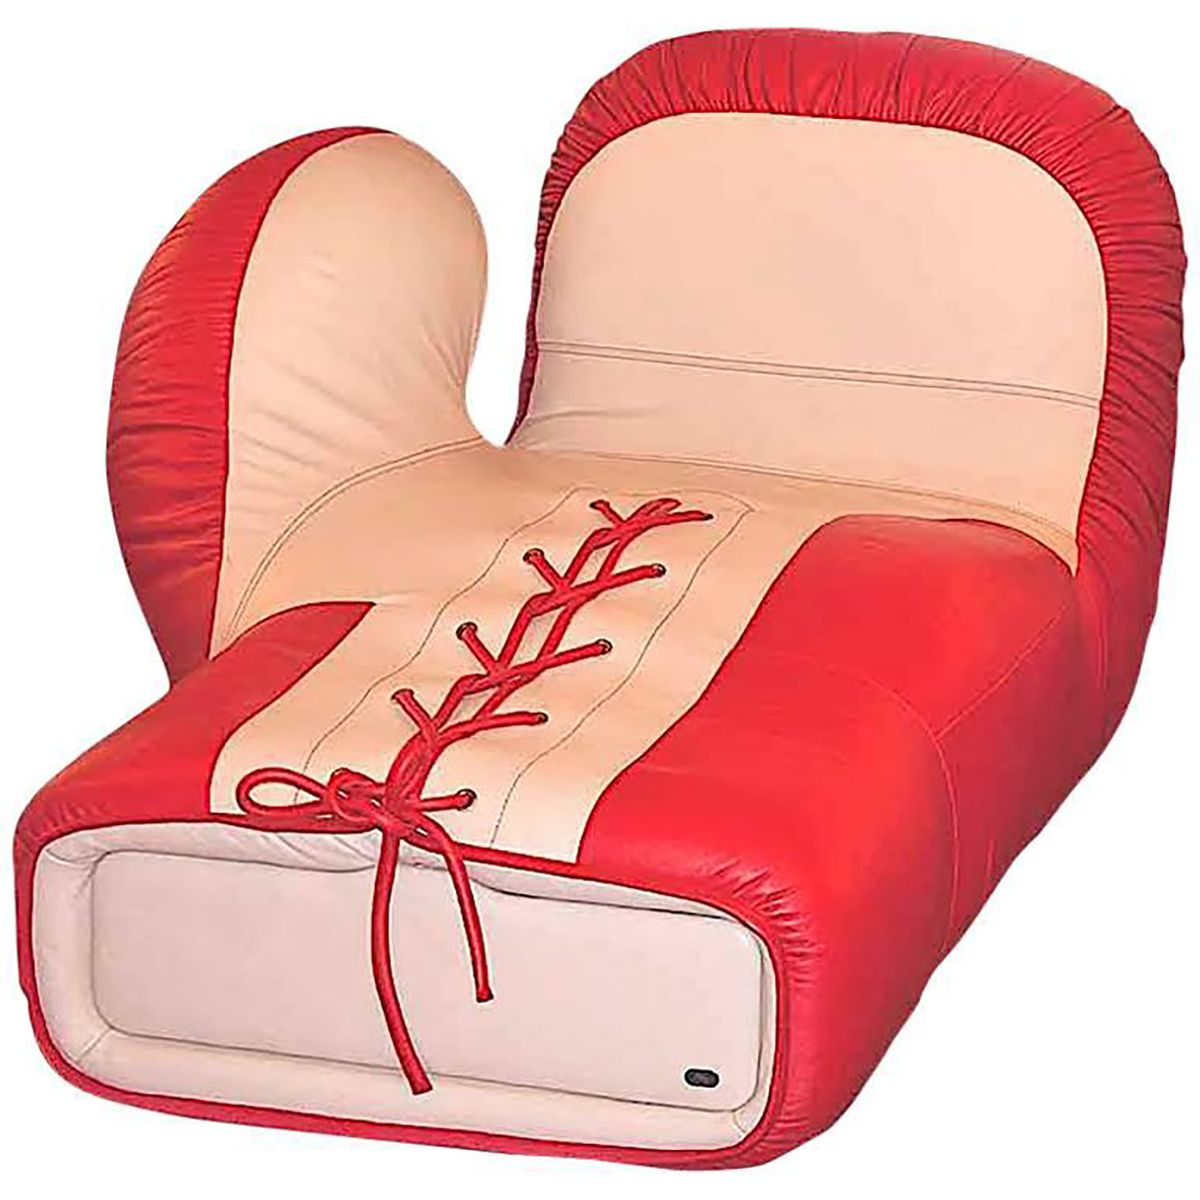 DS2878 Boxing Glove Lounge Chair from de Sede, 1980s